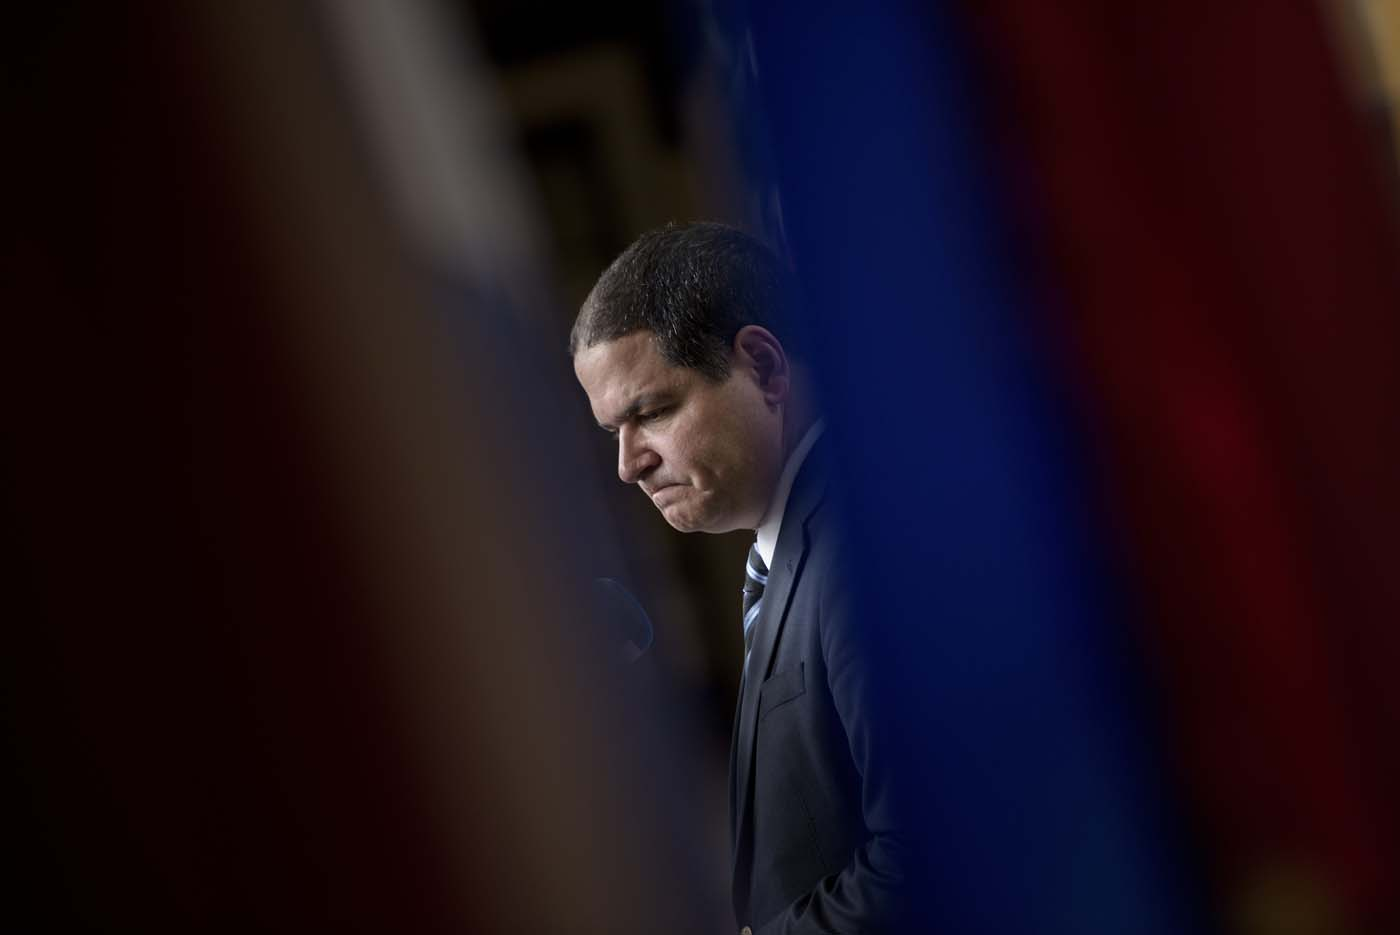 Luis Florido, a member of the opposition in the Venezuelan National Assembly, pauses while speaking to the press after a meeting with Luis Almagro, Secretary General of the Organisation of American States, at the Organisation of American States on May 20, 2016 in Washington, DC. / AFP PHOTO / Brendan Smialowski